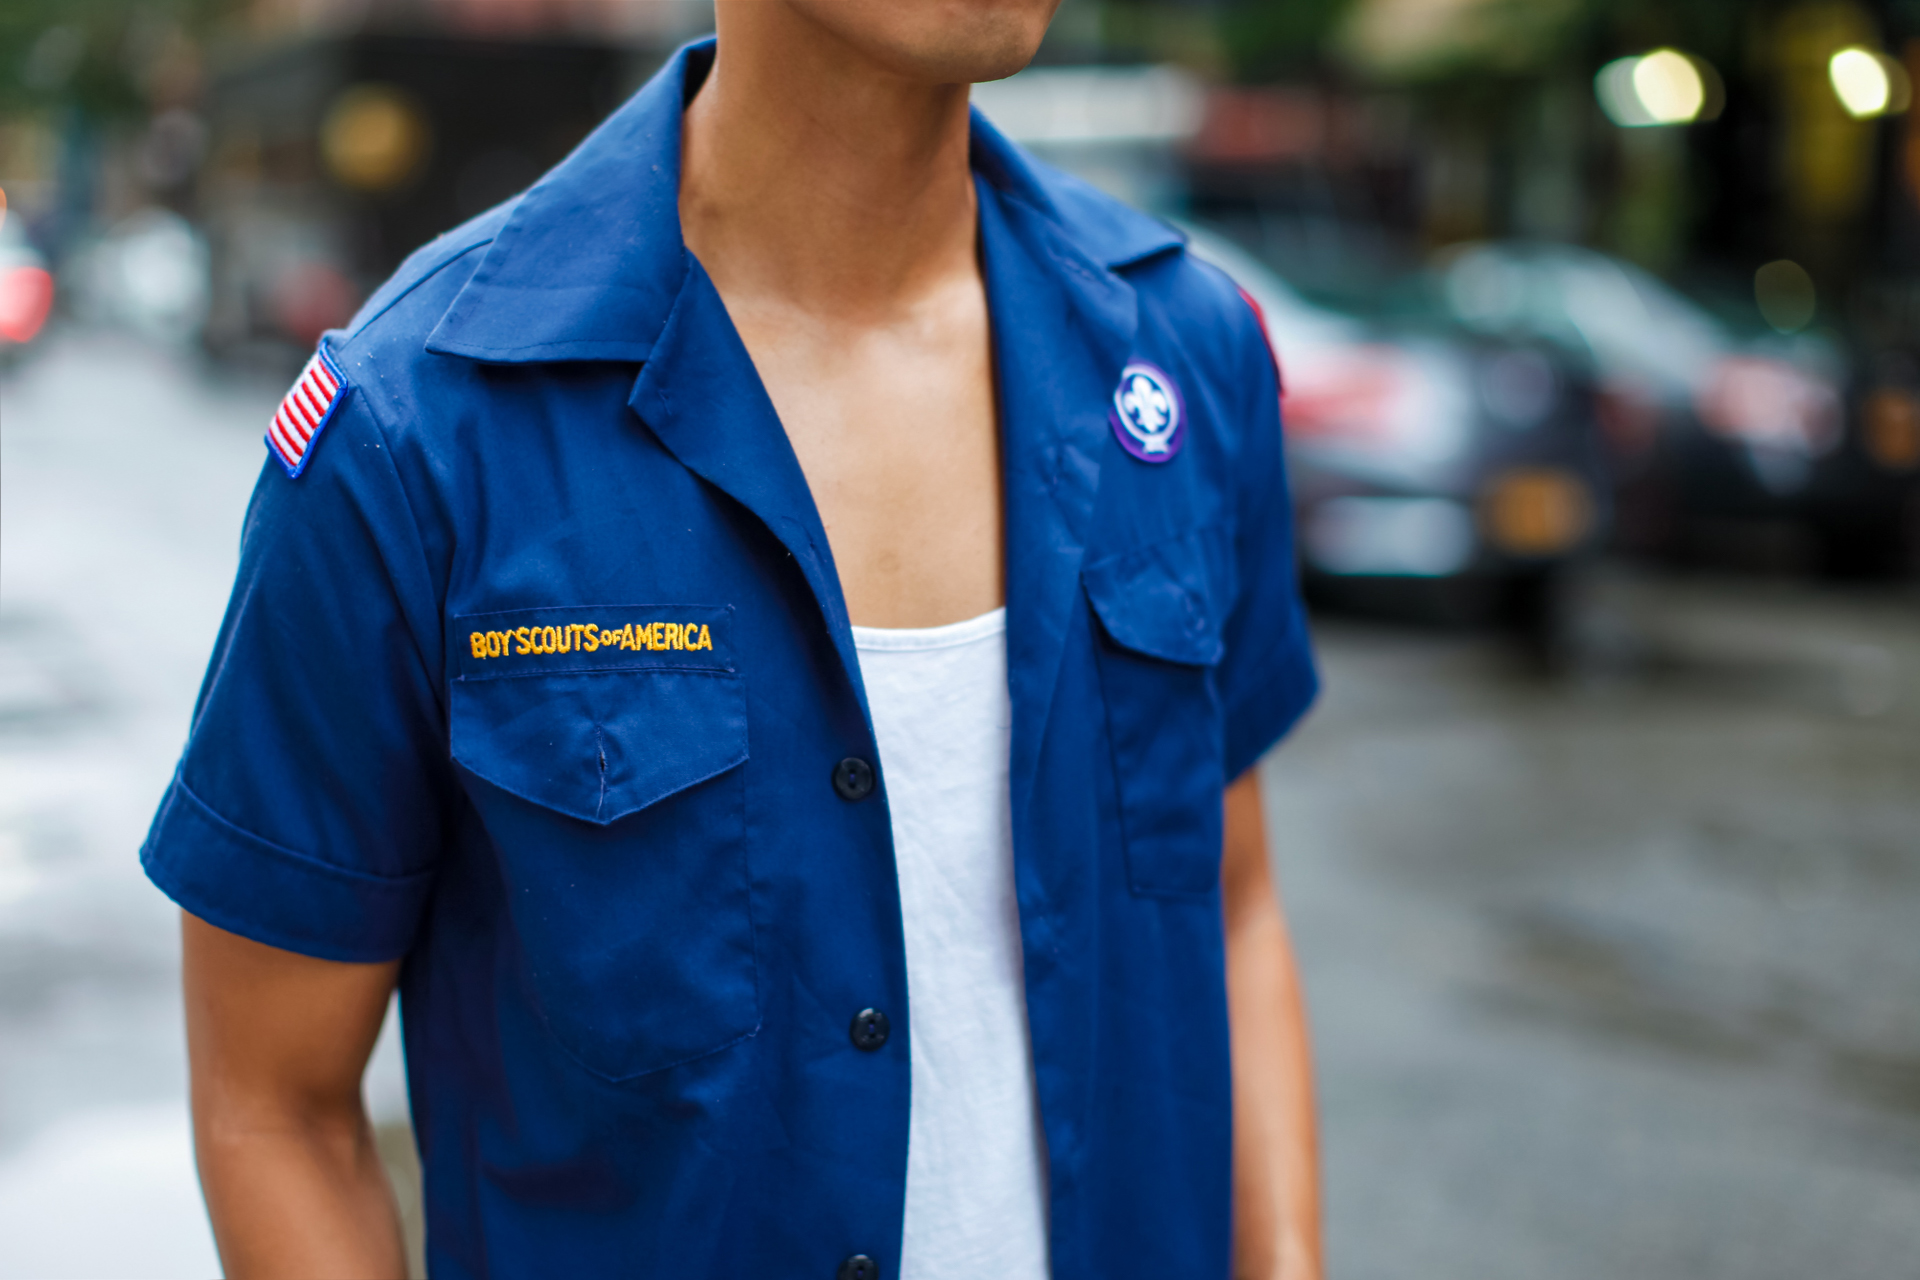 oh anthonio - Anthony Urbano - vintage boy scouts shirt outfit